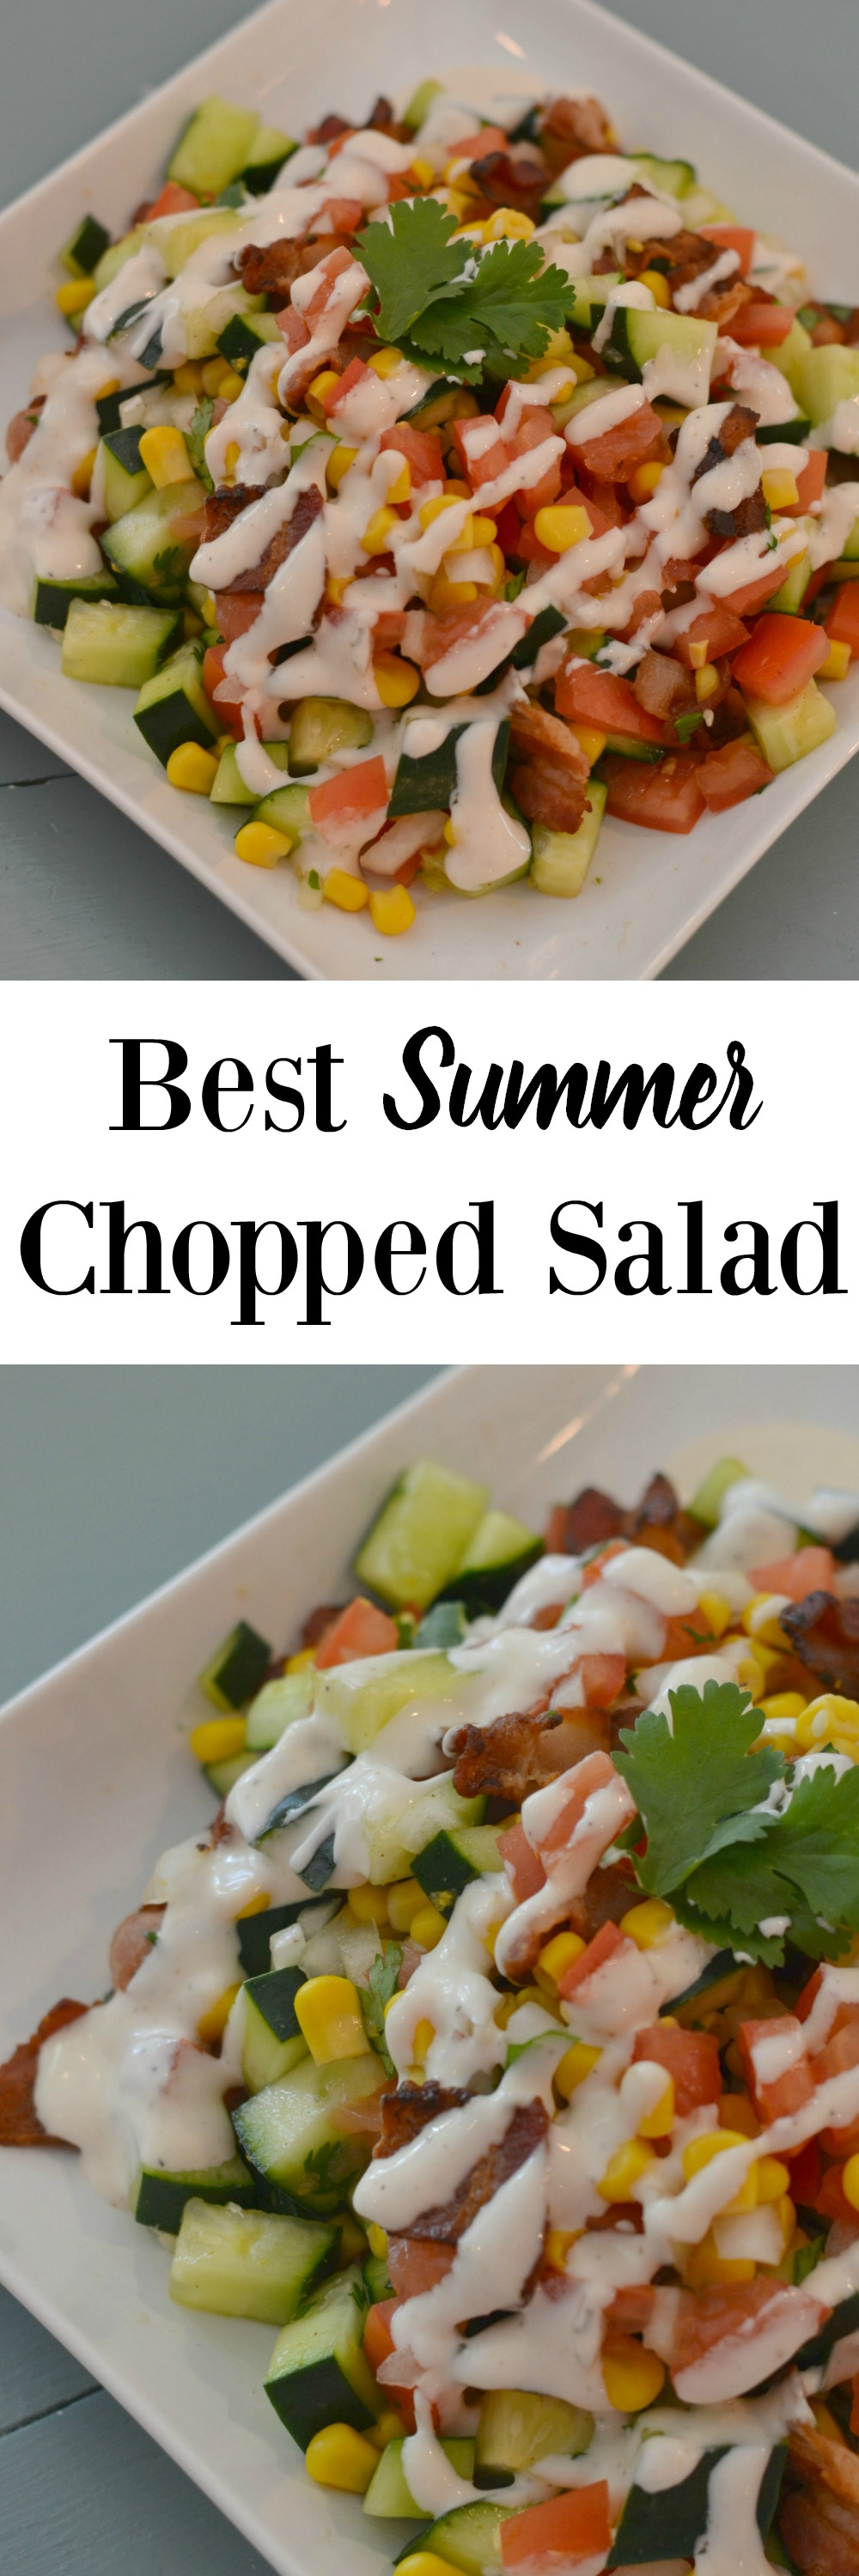 Best Summer Chopped Salad- this salad is so deliciou and easy. Cucumber, tomato, avocado, bacon and more!